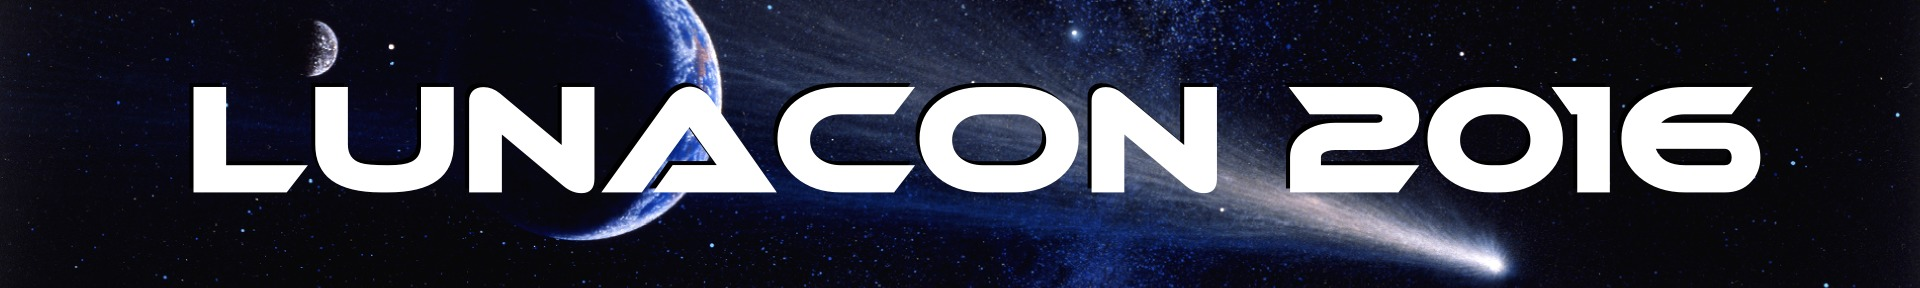 "Lunacon - New York""s Longest Running Science Fiction and Fantasy Convention"